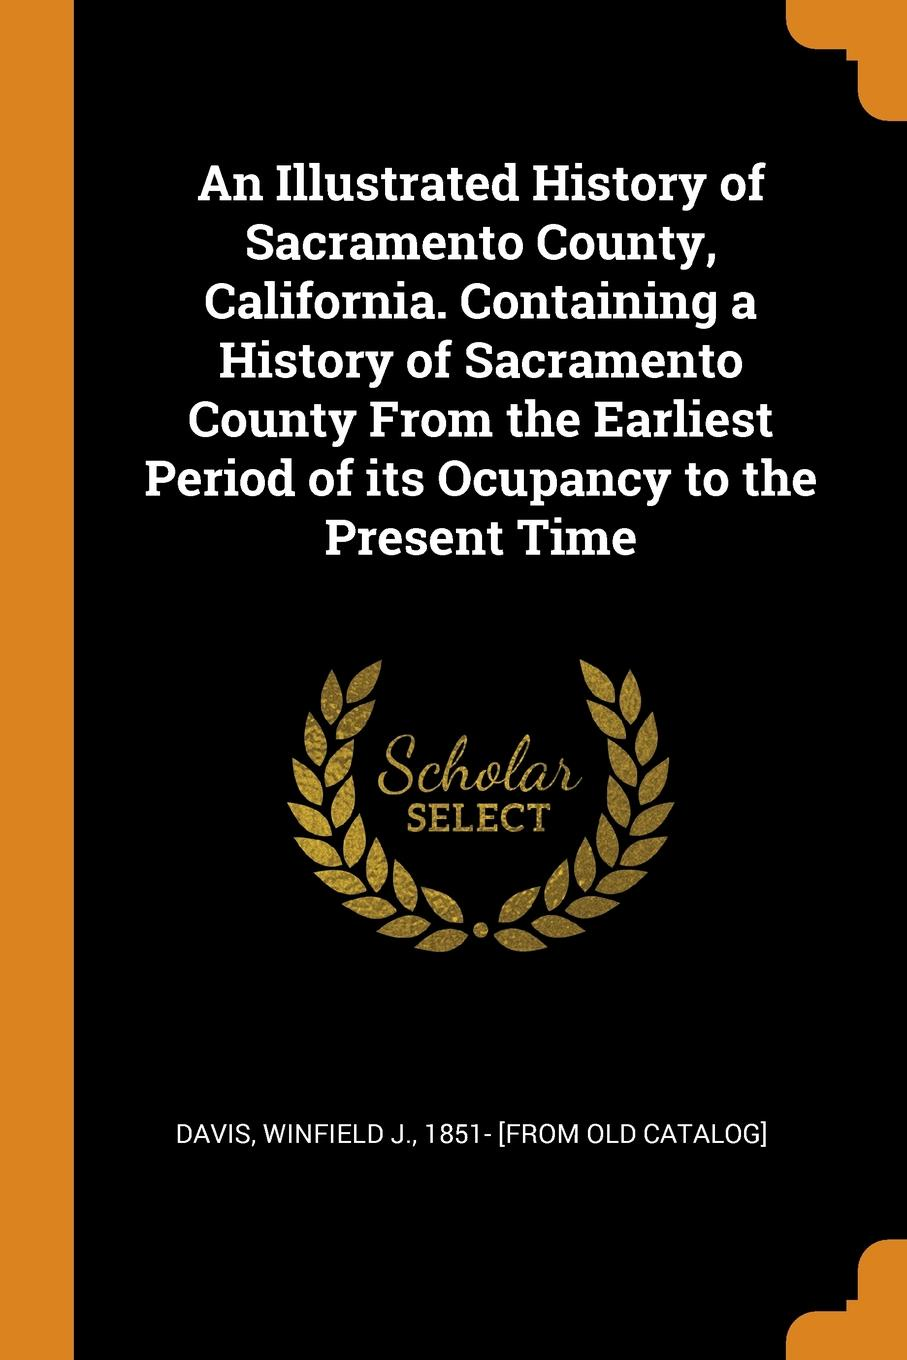 An Illustrated History of Sacramento County, California. Containing a History of Sacramento County From the Earliest Period of its Ocupancy to the Present Time charles richard tuttle the centennial northwest an illustrated history of the northwest being a full and complete civil political and military history of this great section of the united states from its earliest settlement to the present time